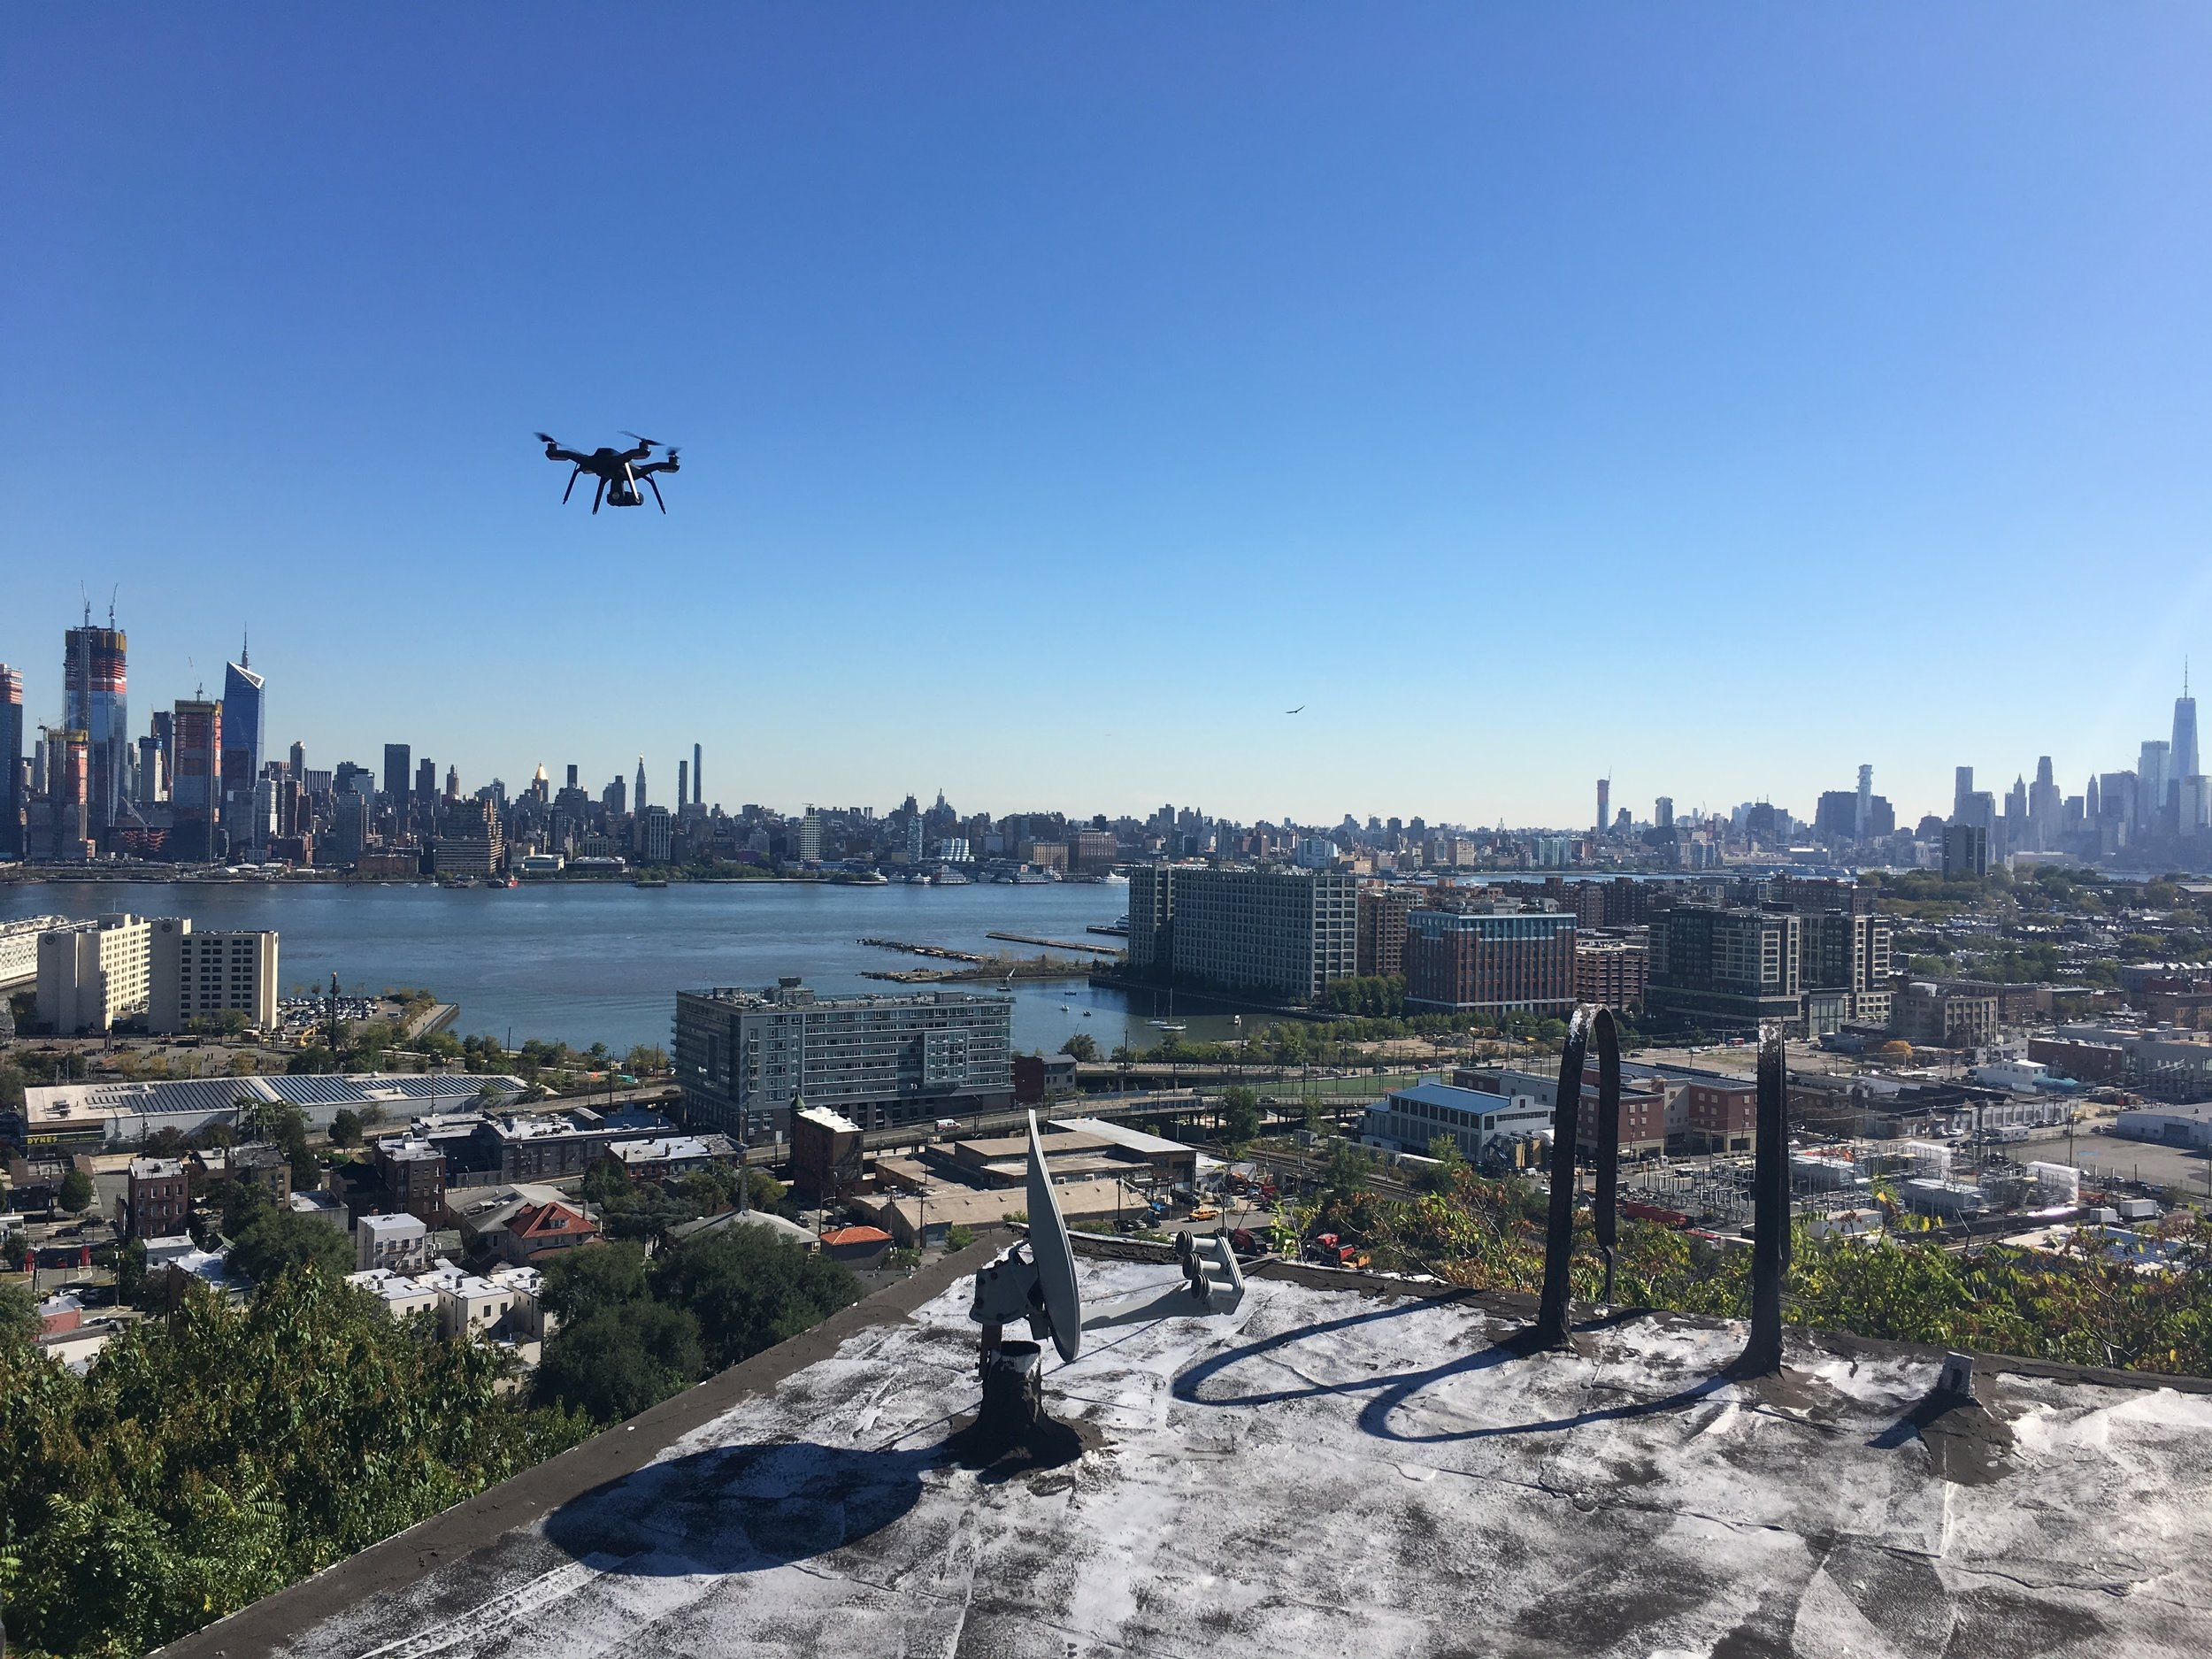 Drone and city.JPG